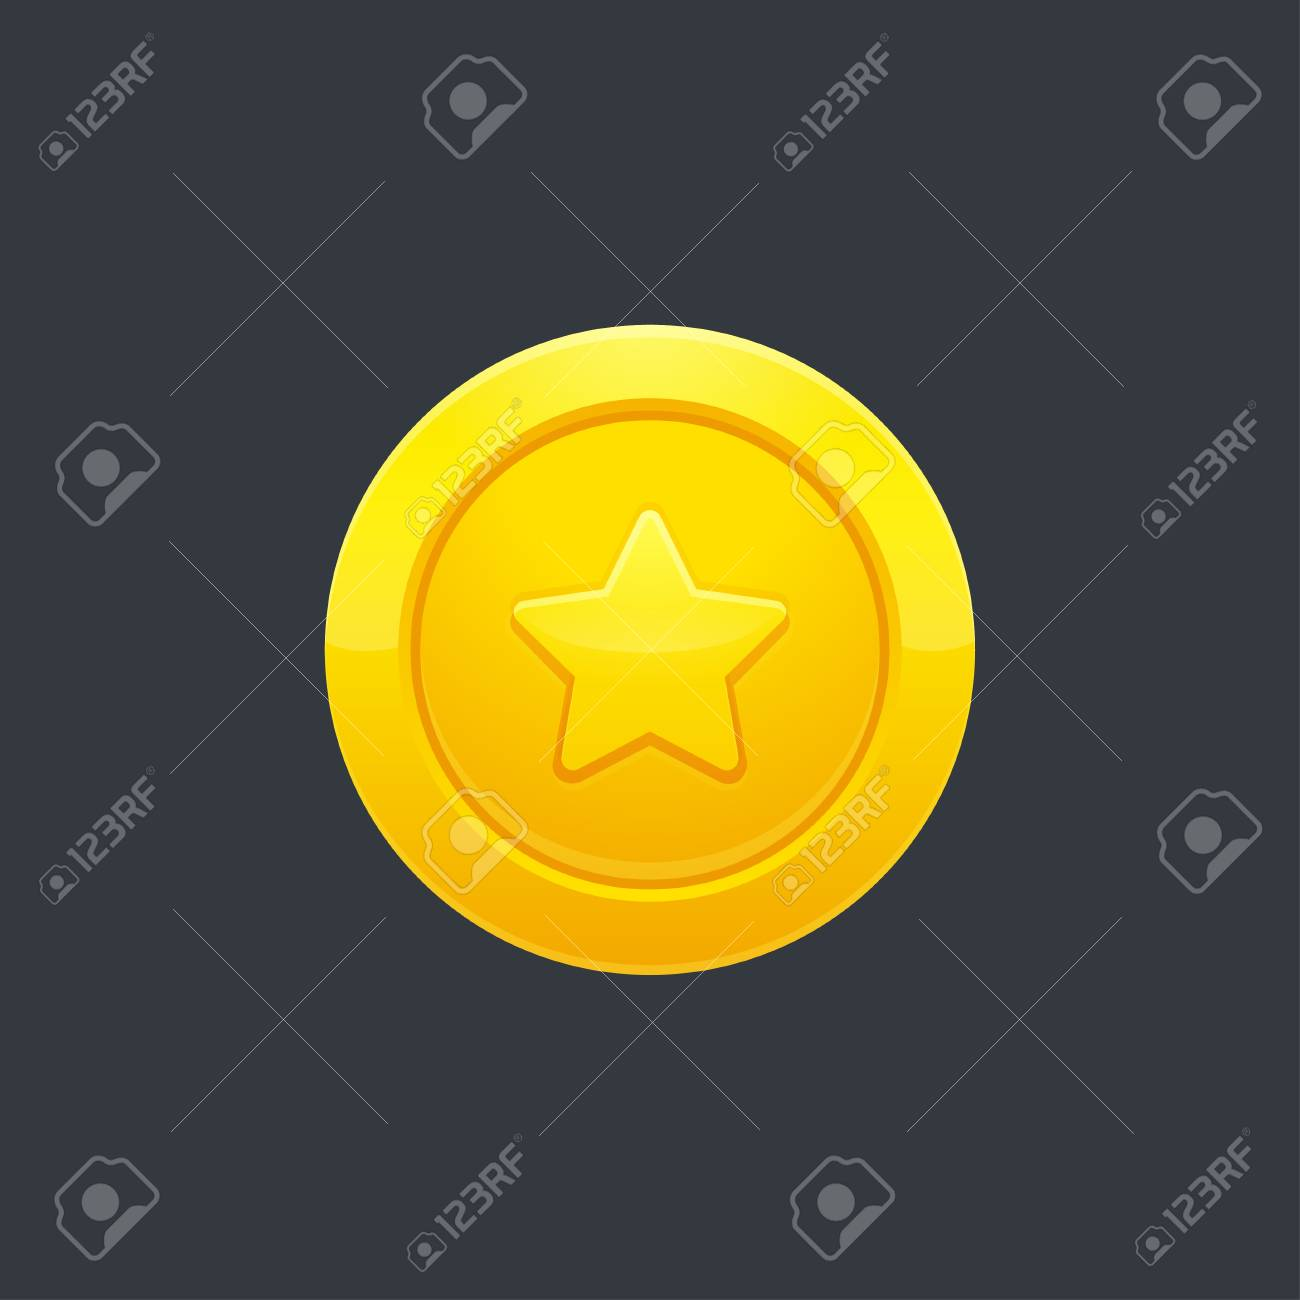 Video game golden coin or medal with star shape on dark background, vector illustration. Interface design element. - 78548259